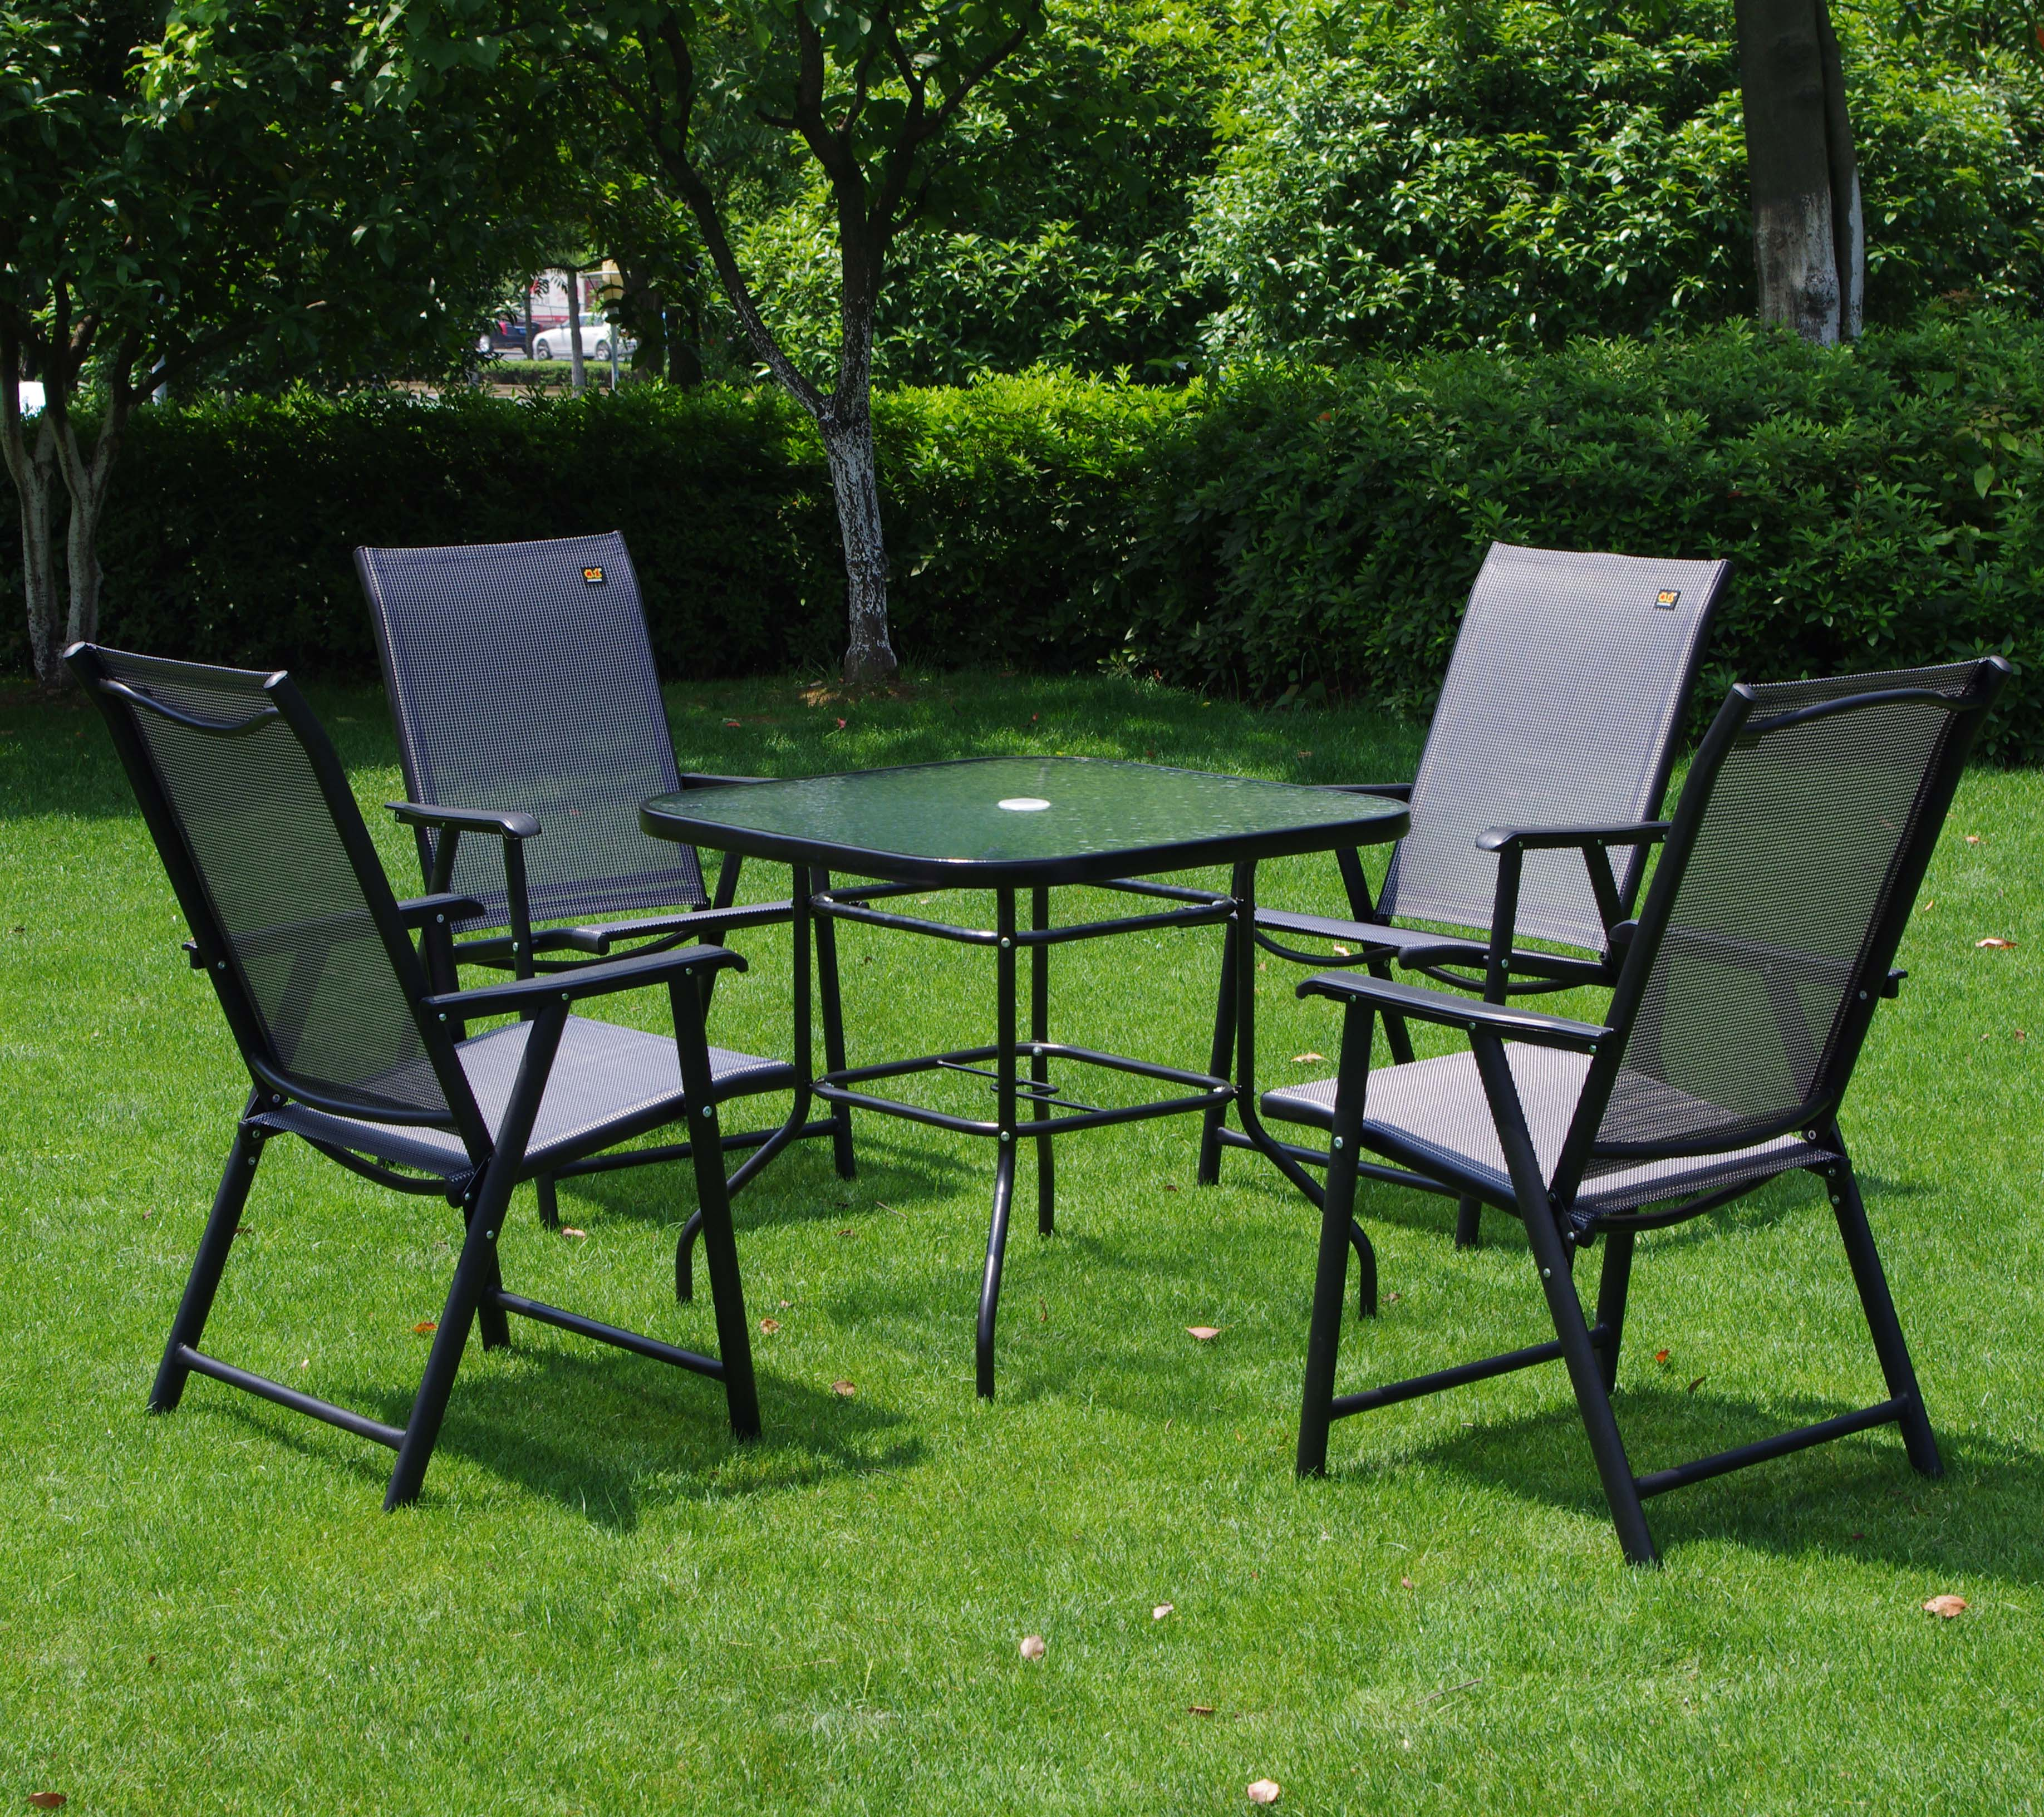 Wrought Iron Balcony Outdoor Furniture Patio Umbrella Tables And Chairs Leisure Folding Thick Waterproof Sun In From On